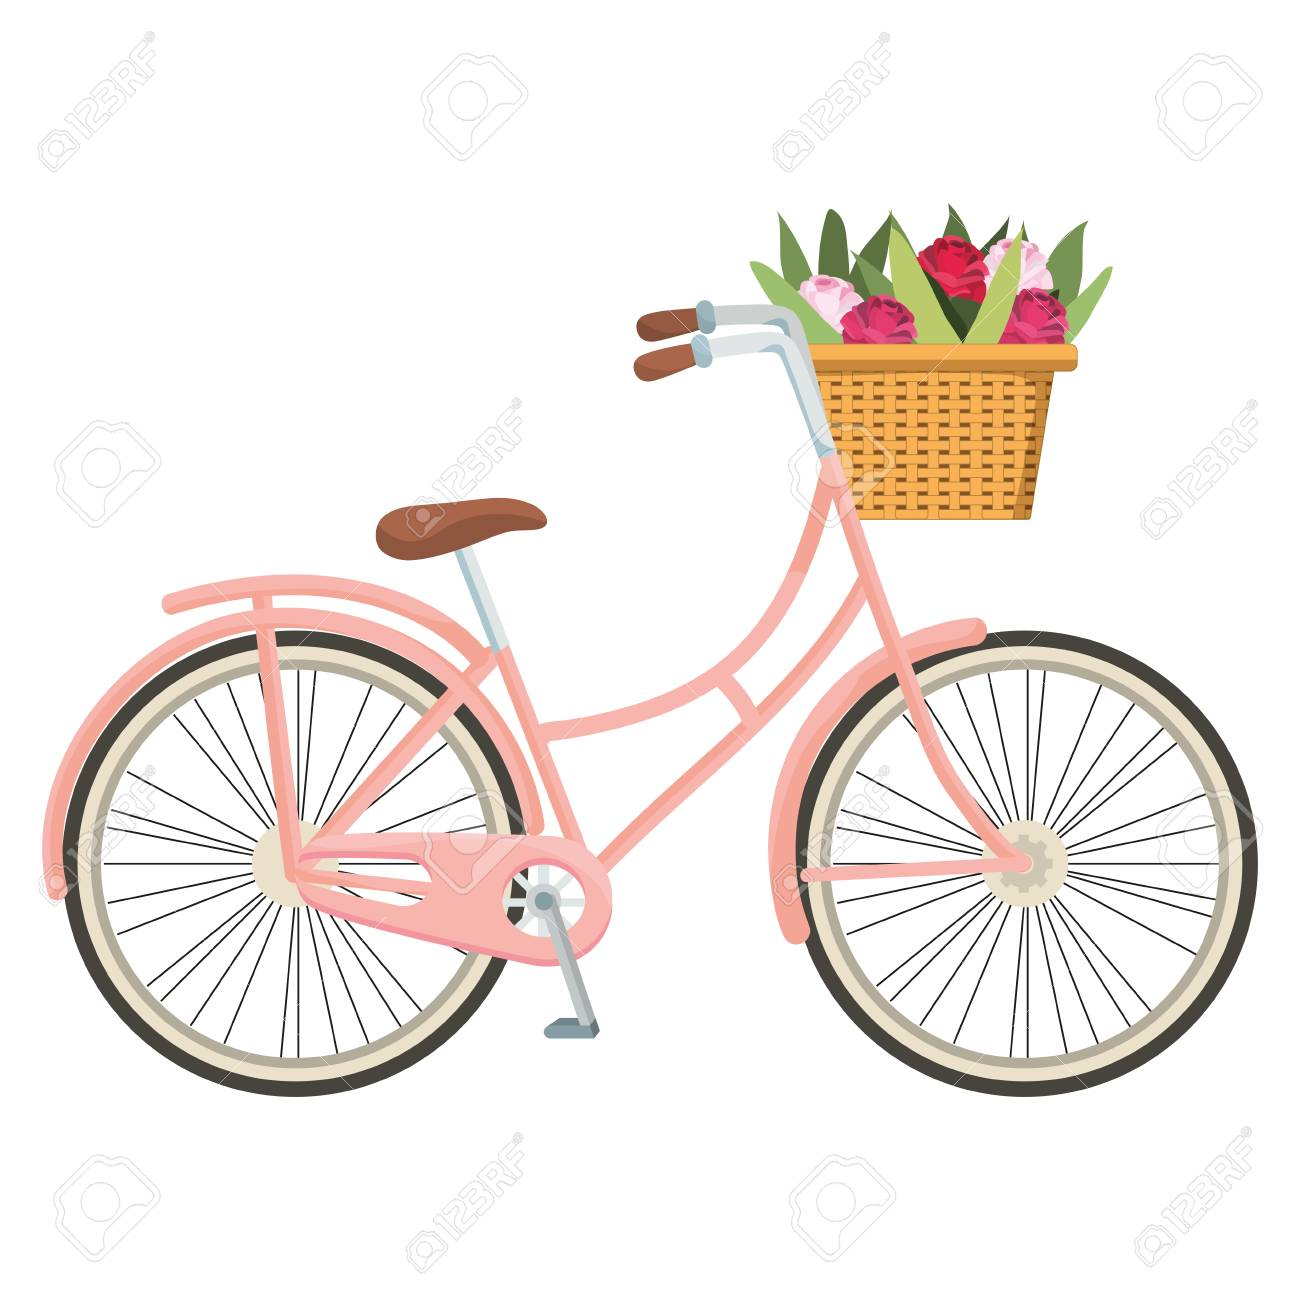 cute bicycle and basket with flowers cartoon vector illustration graphic design - 127142324